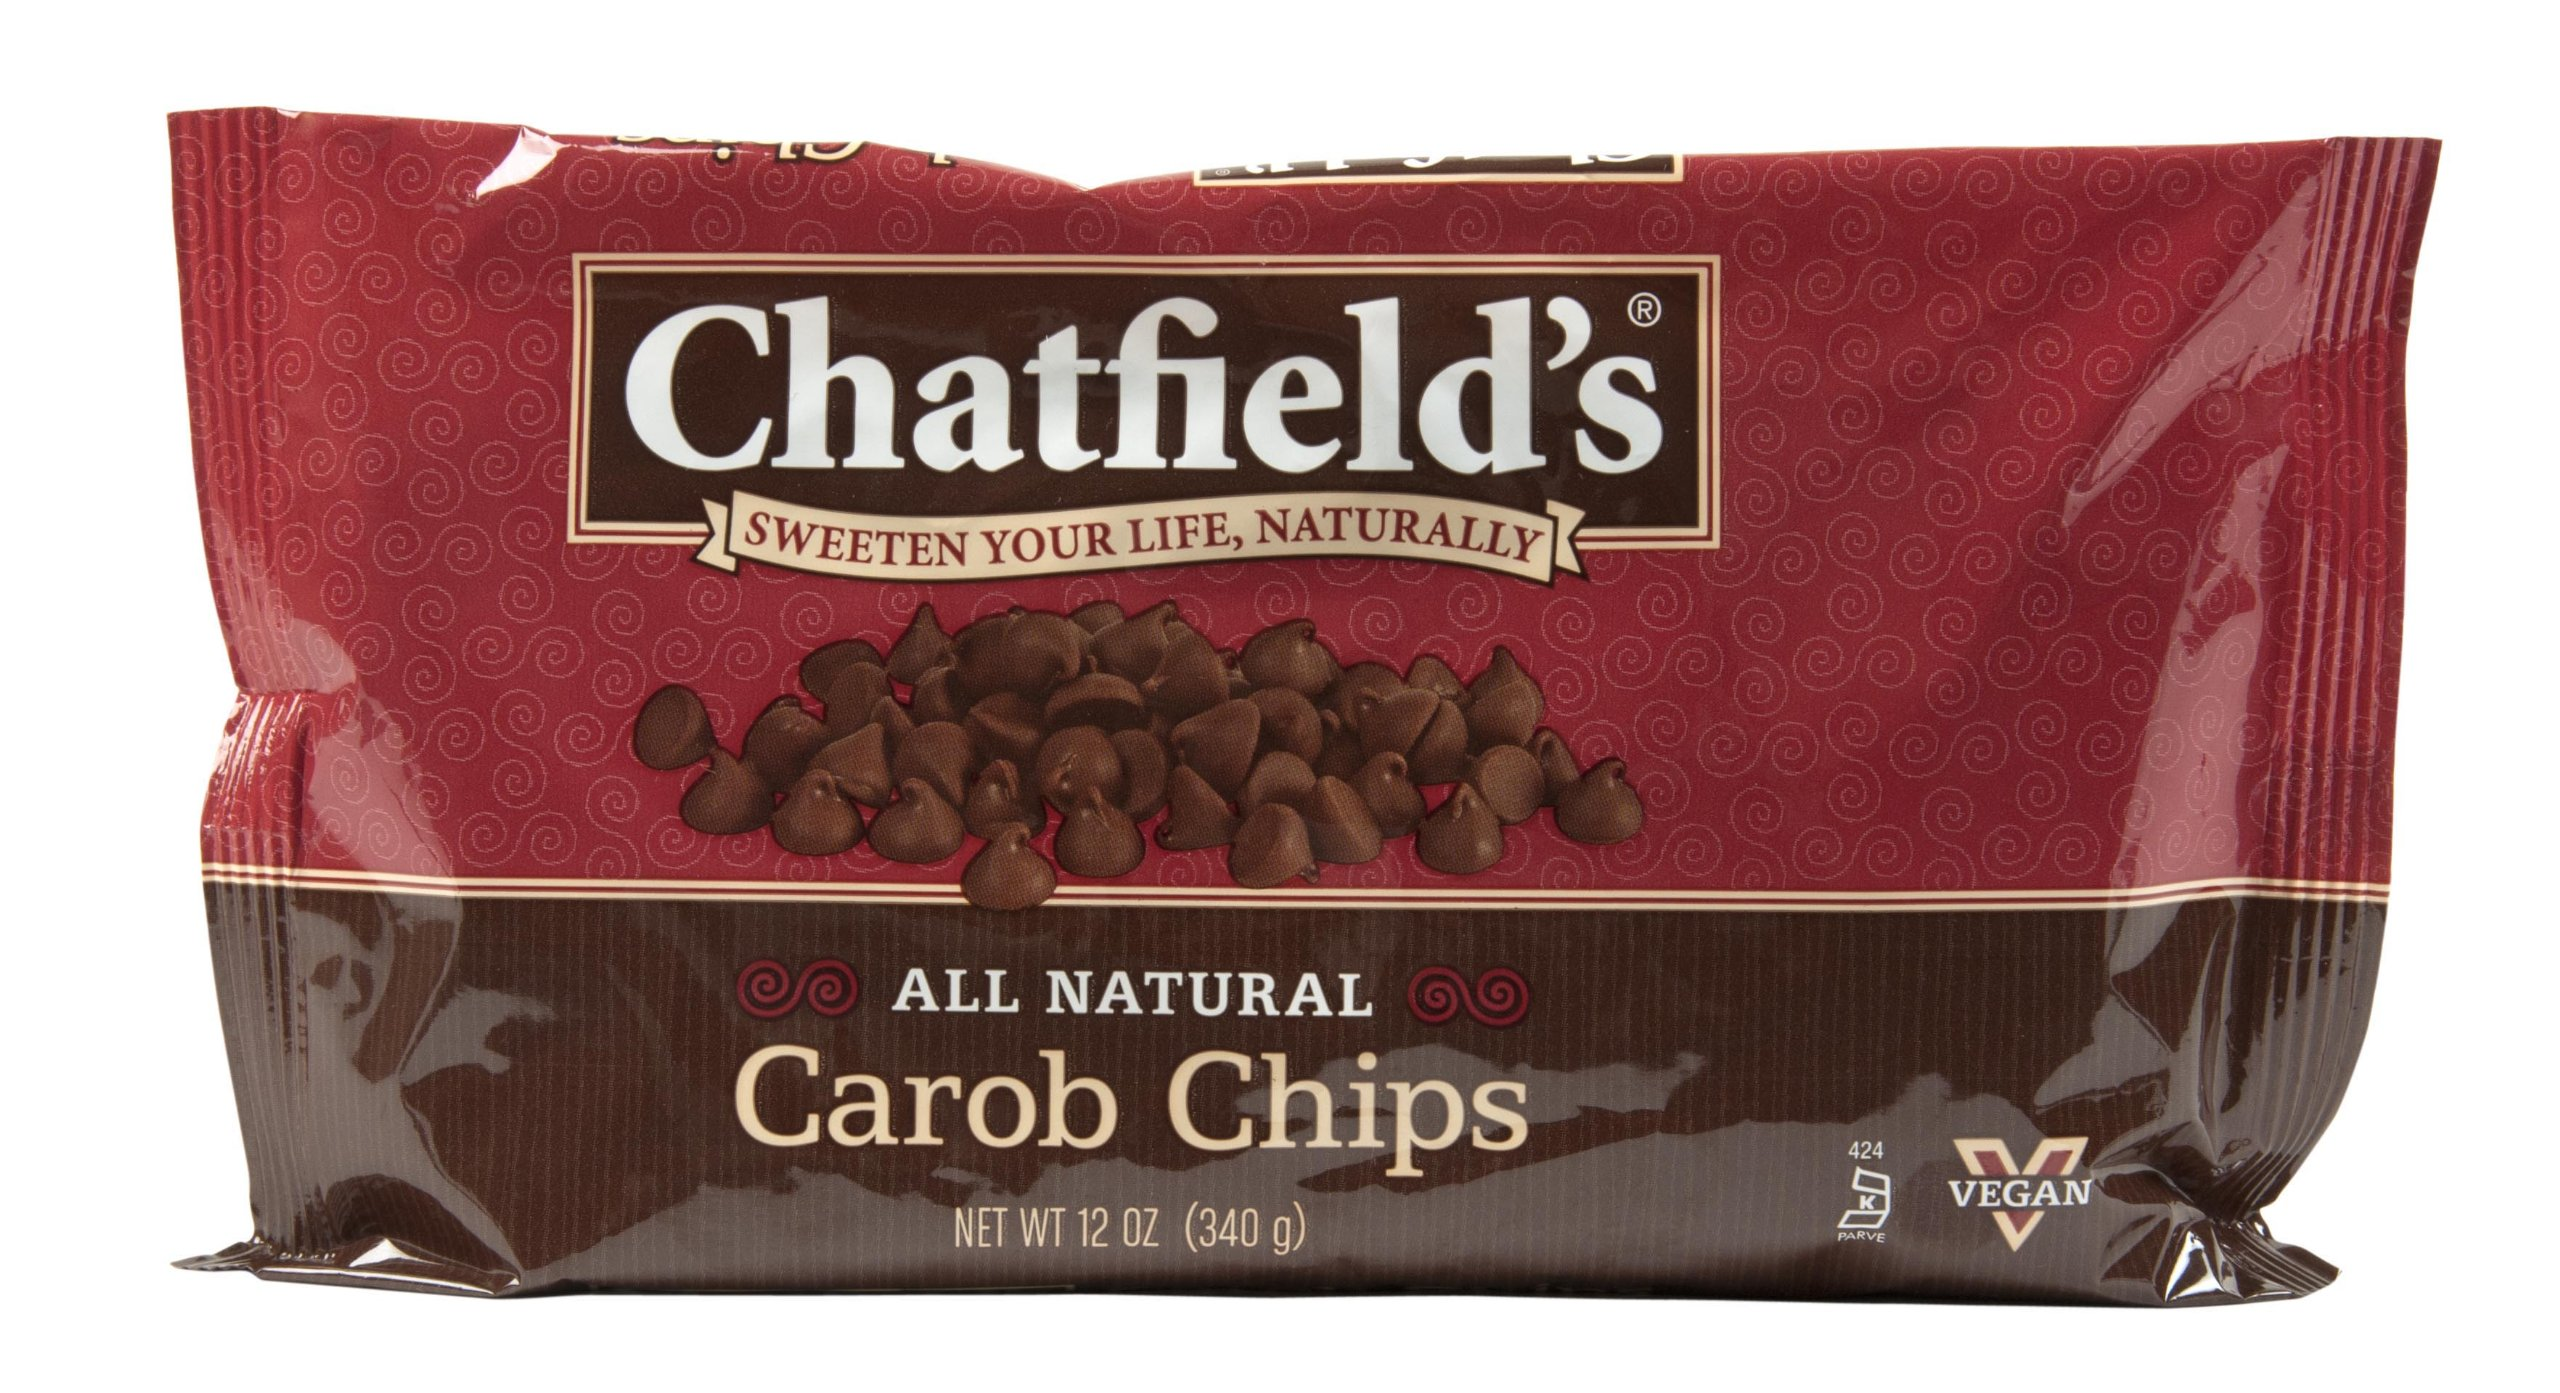 Chatfield's Carob Chips 12oz